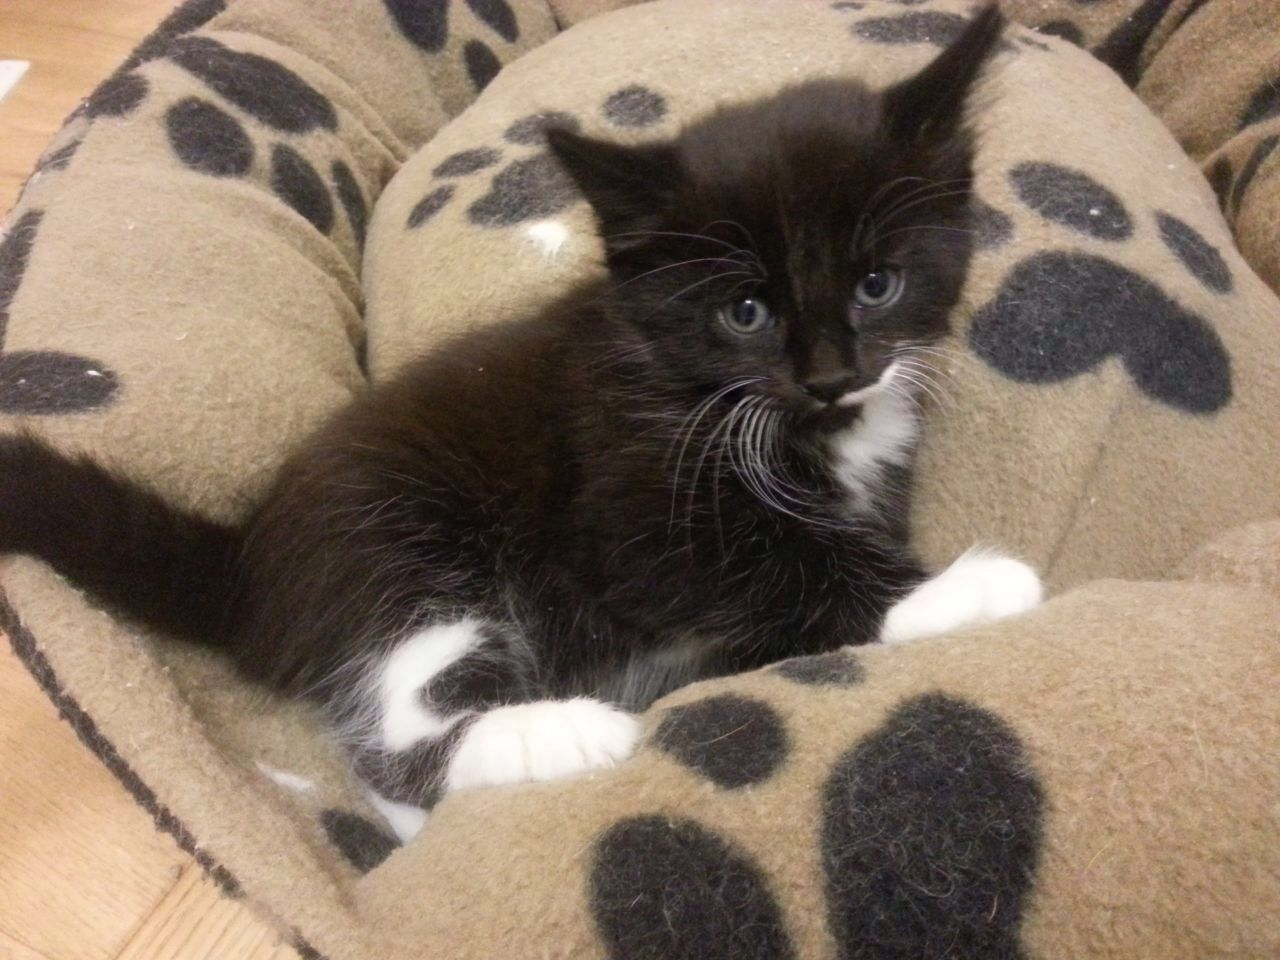 Kittens For Sale London South West London Pets4homes White Kittens For Sale Black White Kittens Kitten For Sale